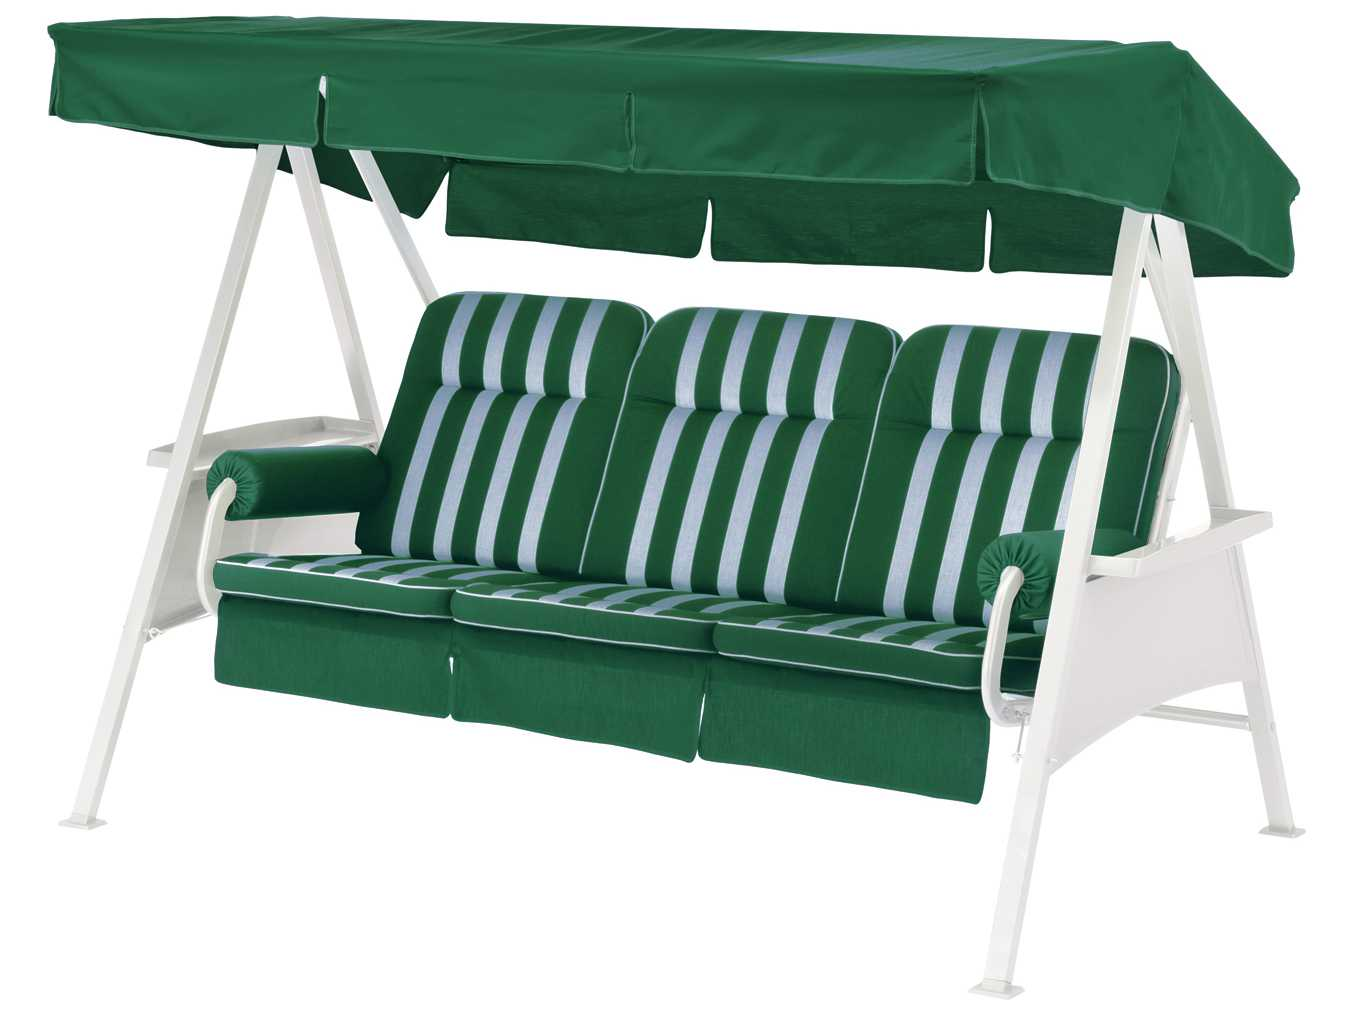 Kettler 3 Seater Swing W Forest Green Cushion Set 41590k1